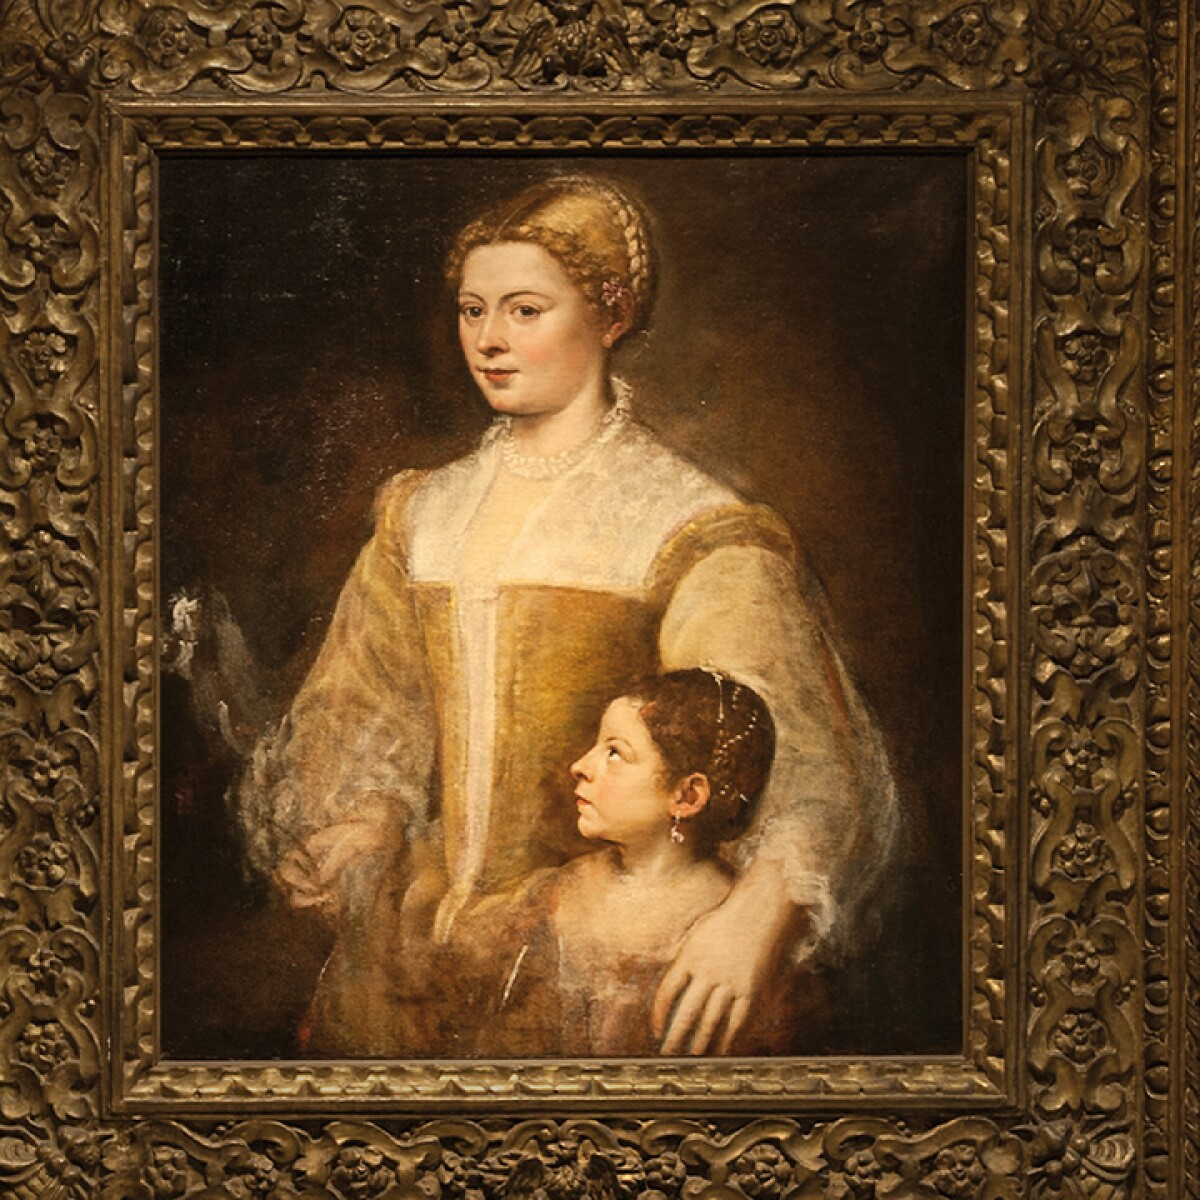 The Miraculous Tale of Titian's Lost Masterpiece